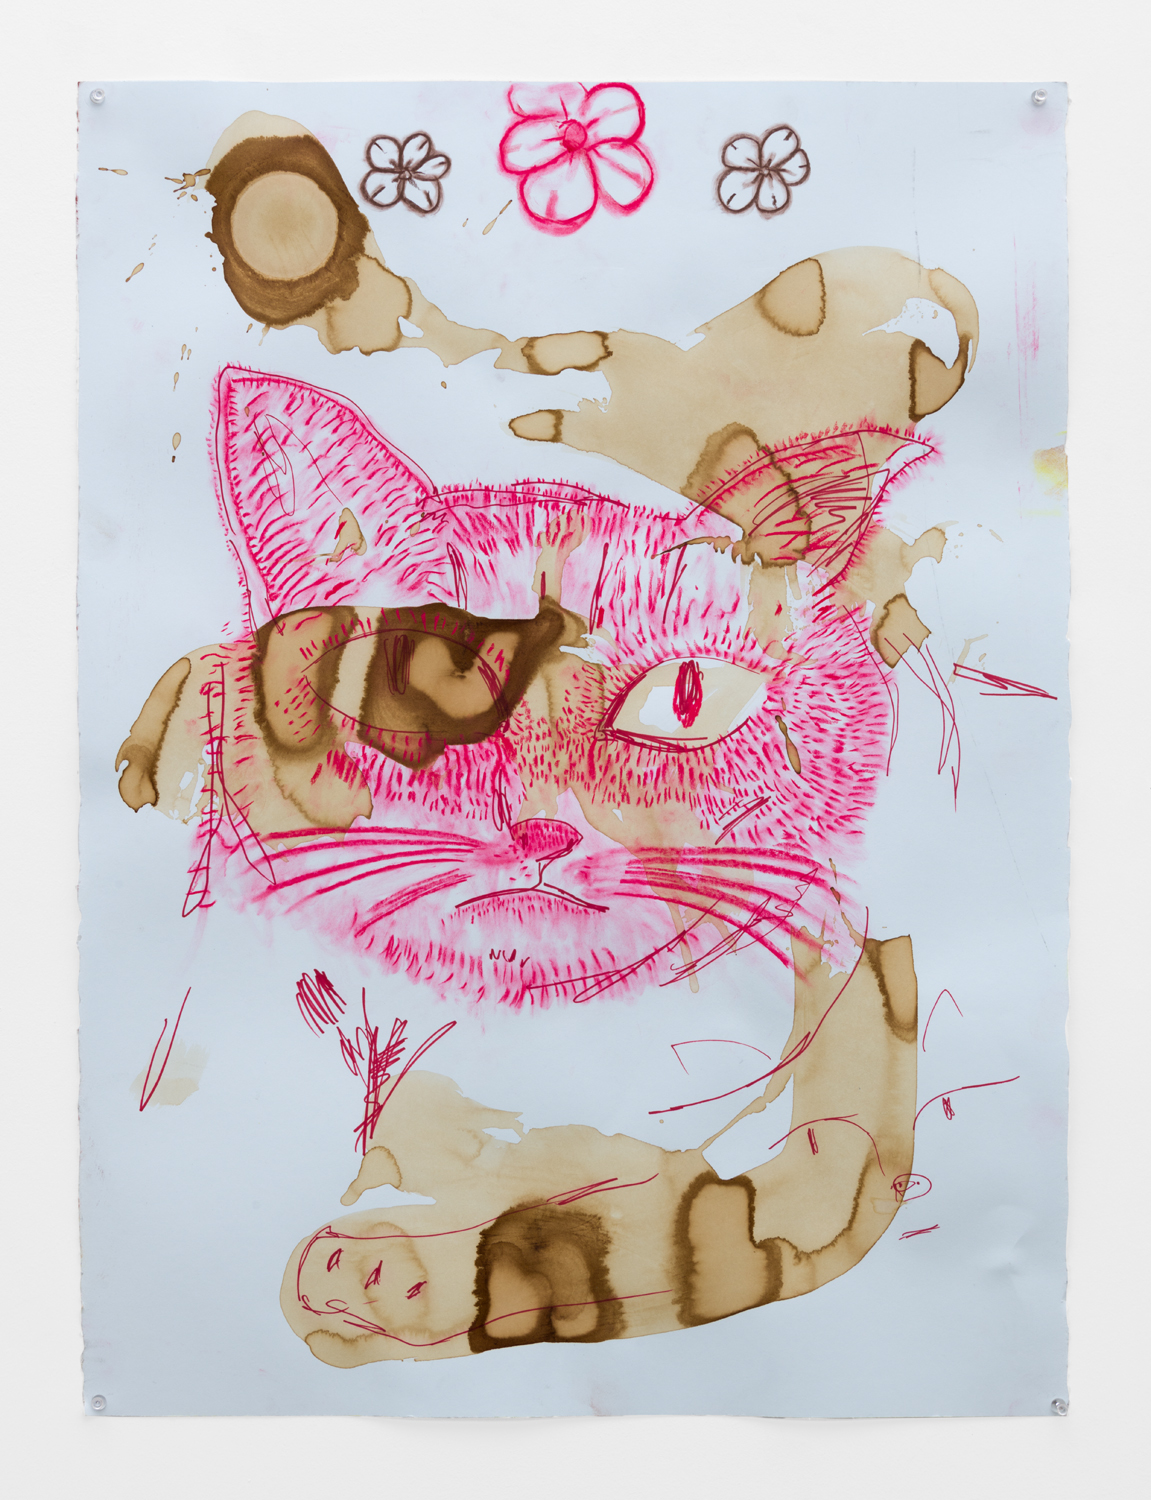 Benjamin Weissman & Ravi Jackson  Untitled, 2017  Pastel, pencil, marker and watercolor on paper  30 x 22.25 inches